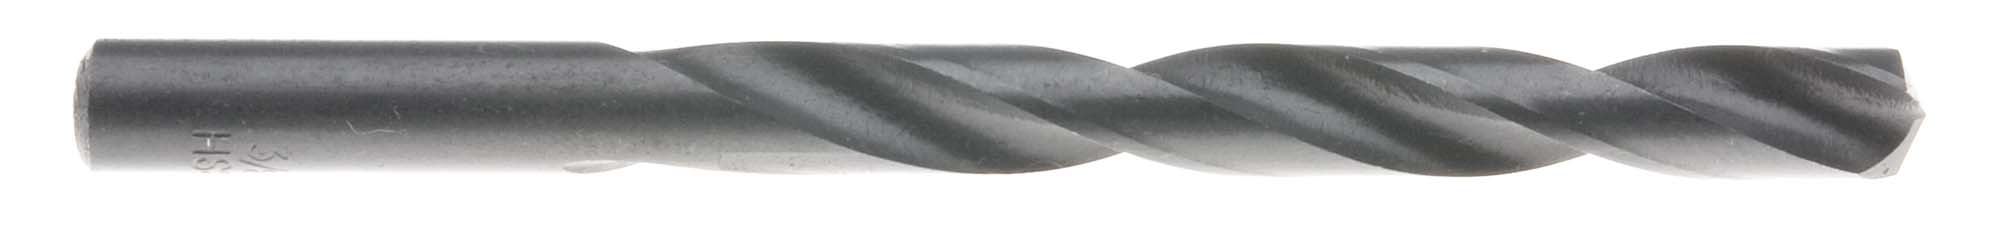 "JSP-11/32  11/32"" Heavy Duty 135 Degree Split Point Jobber Length Drill Bit, High Speed Steel"